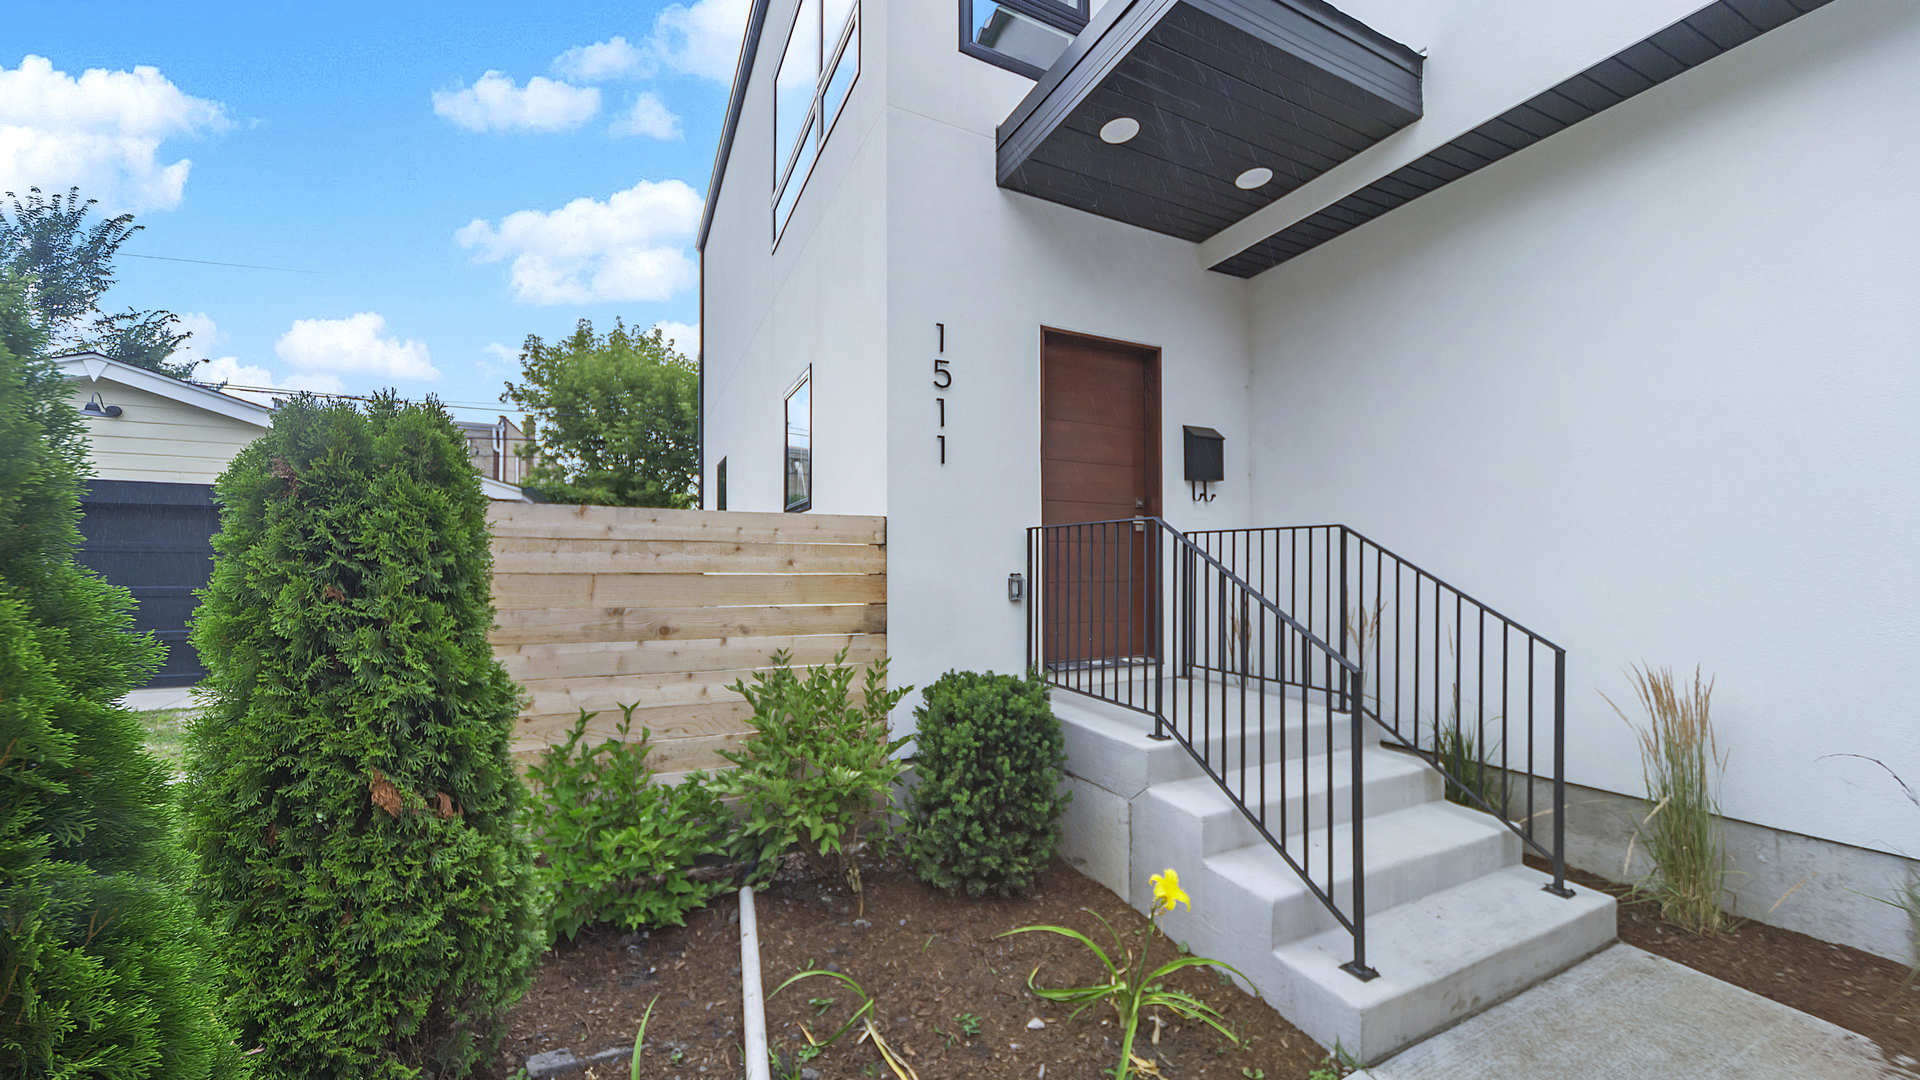 1509 Wilder Street 60202 - One of Evanston Homes for Sale